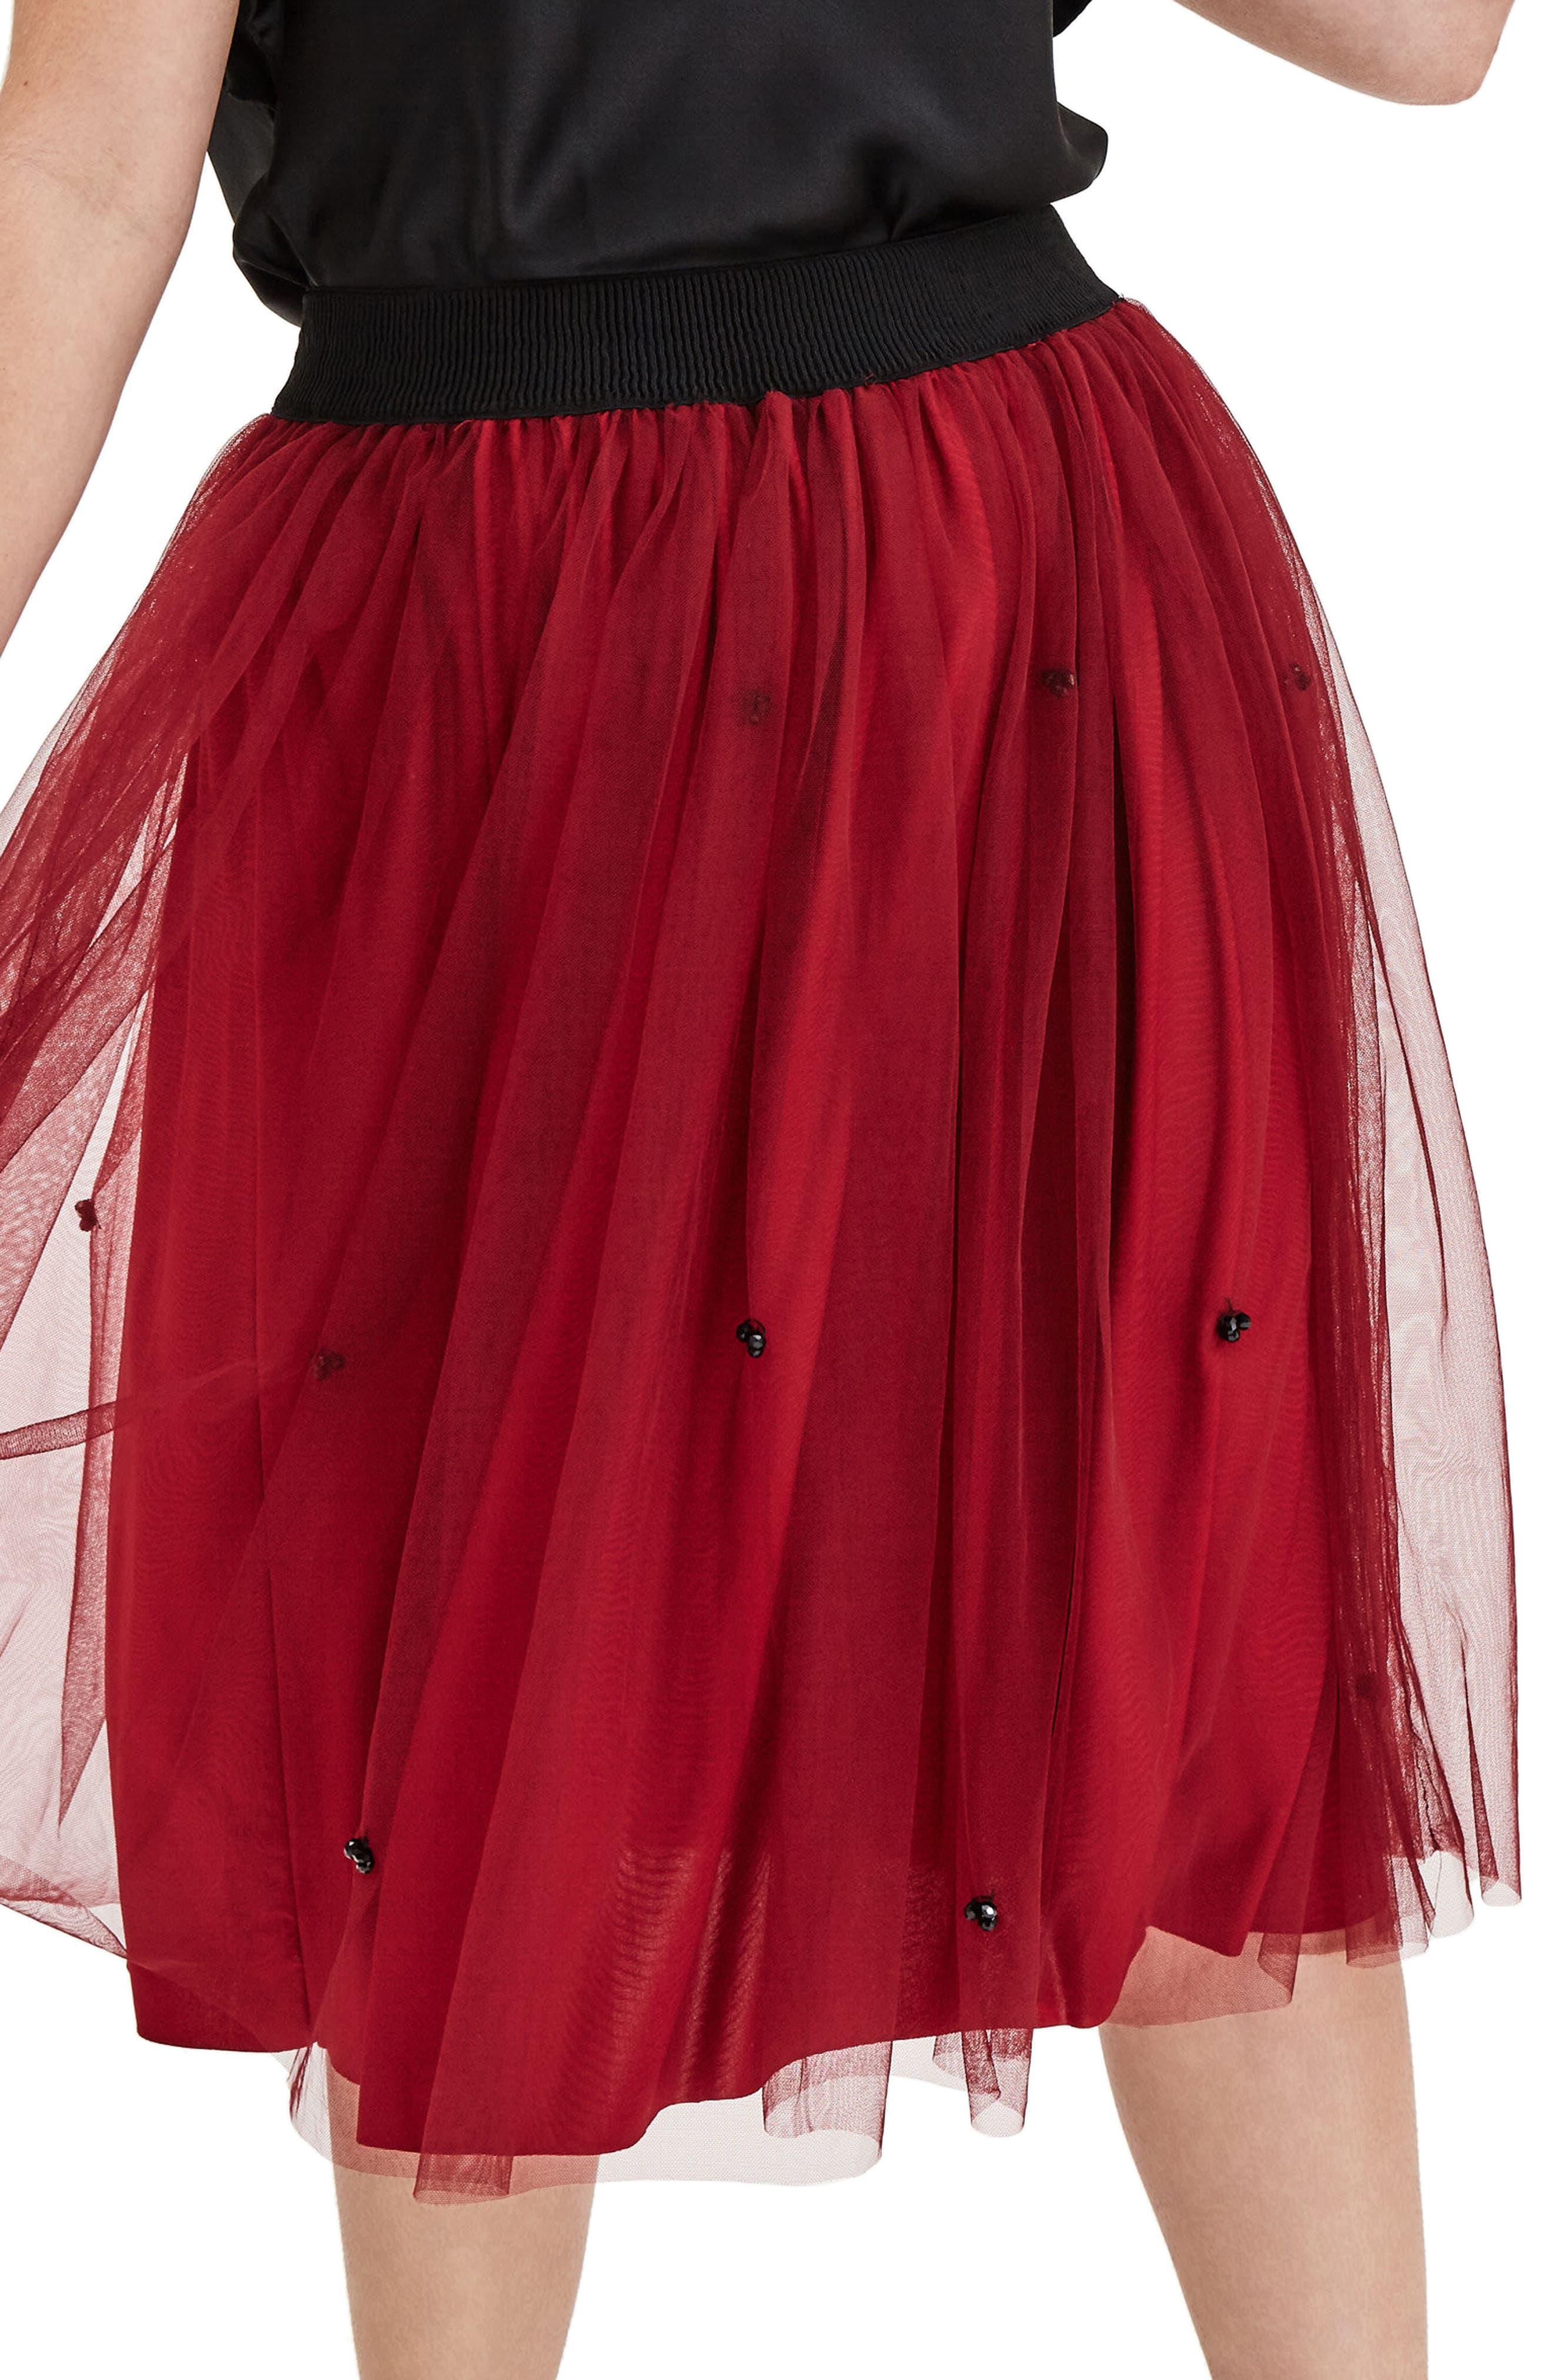 Red Tulle Beaded Skirt,                             Alternate thumbnail 3, color,                             600